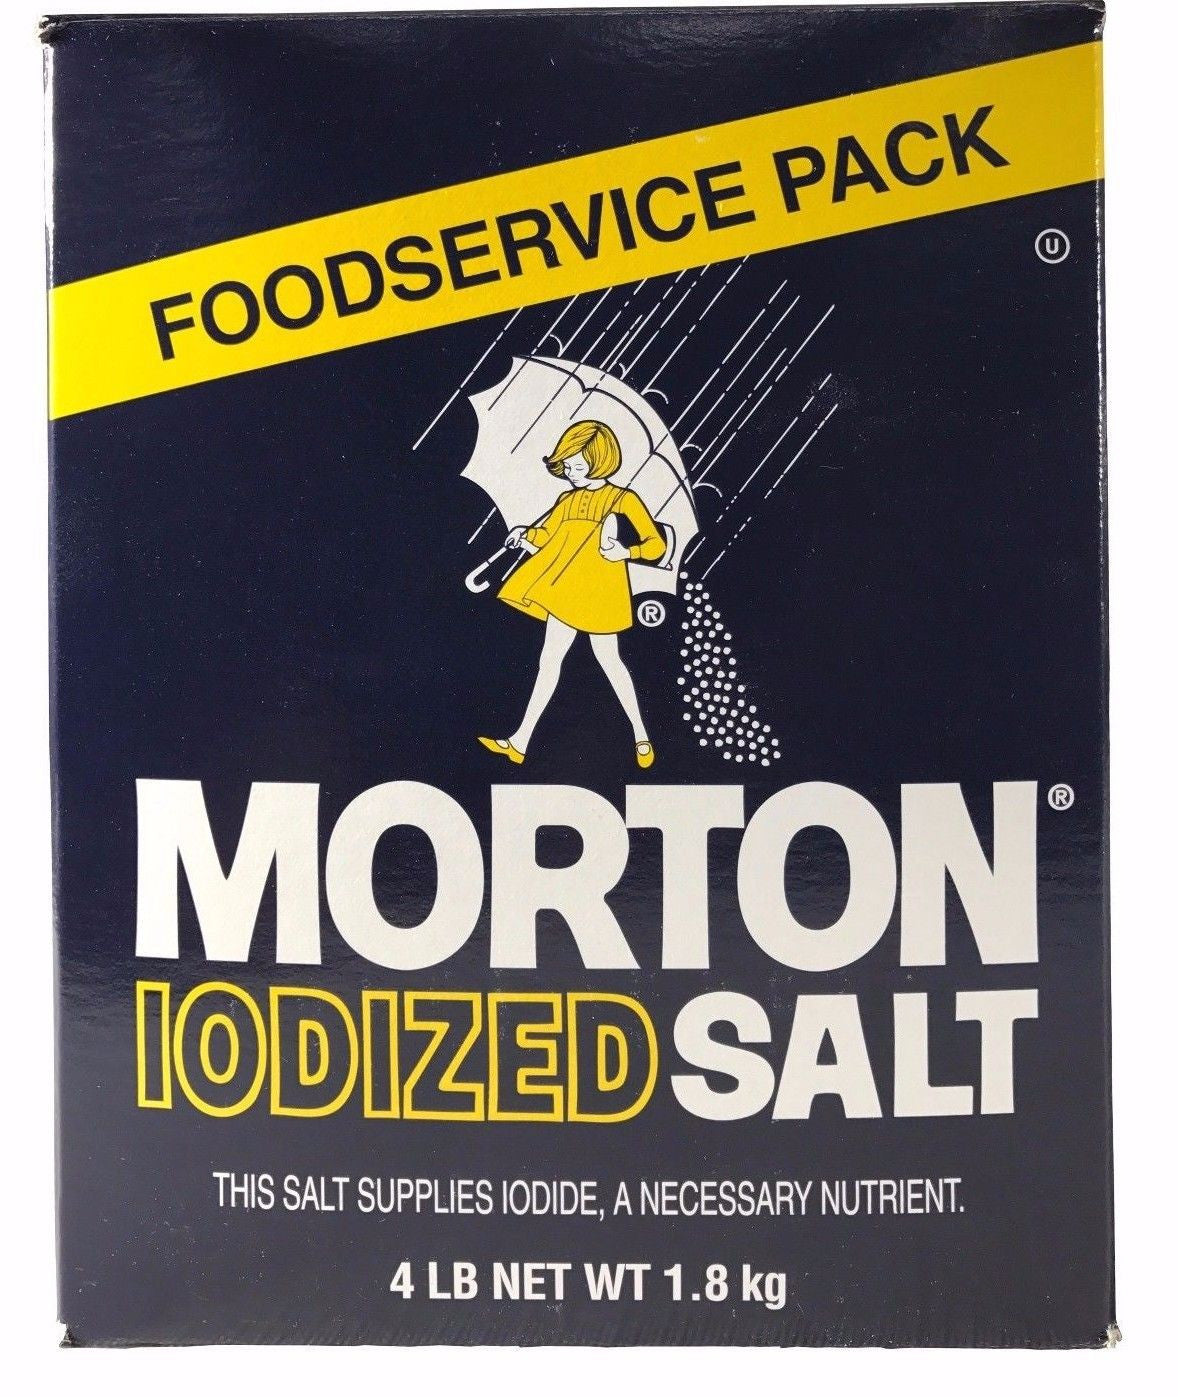 Morton Iodized Salt Foodservice Pack 4 LB